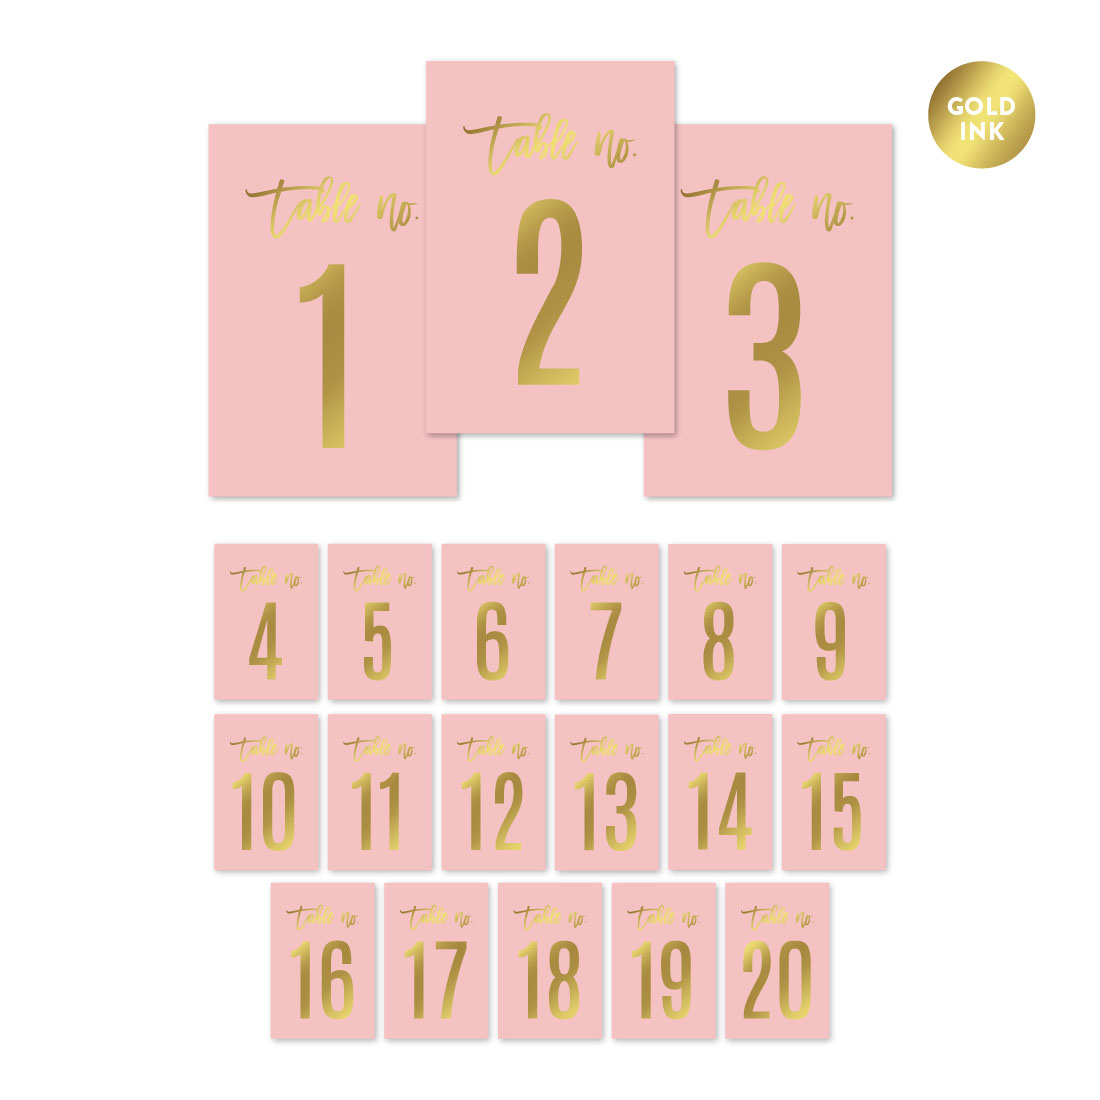 Blush Pink and Metallic Gold Confetti Polka Dots, Table Numbers 1 - 20 on Perforated Paper, Single-Sided, 4 x 6-inch